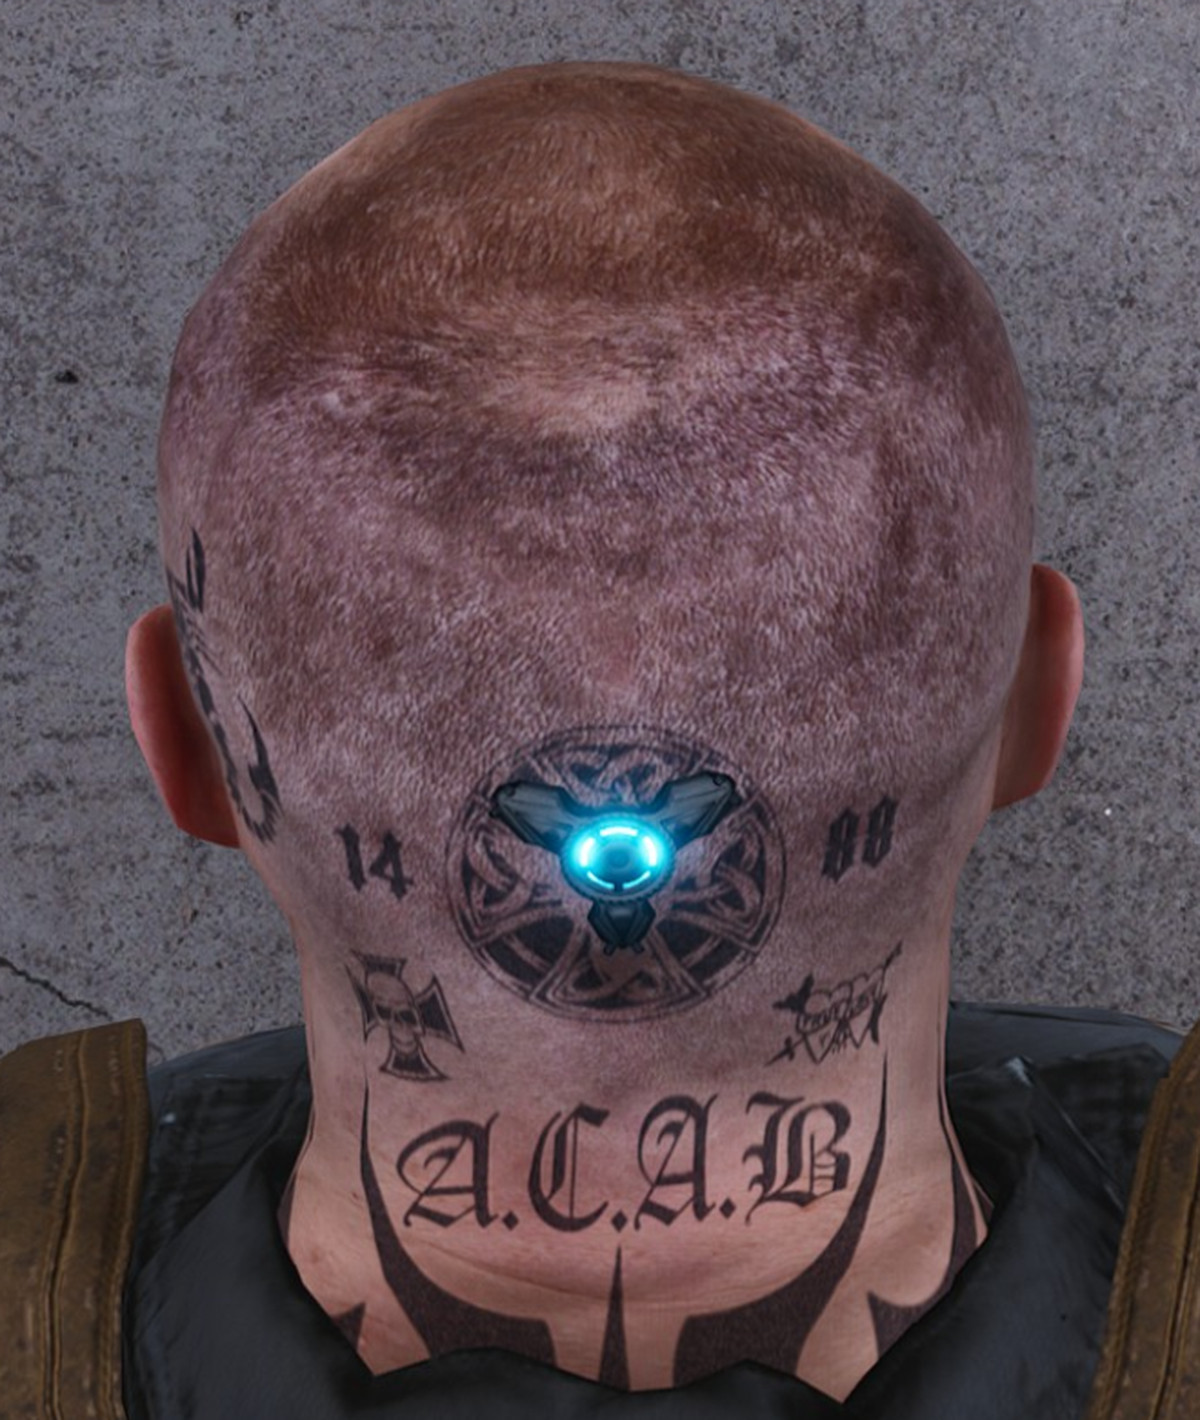 Scum's N*Z* Tattoos Have Been Removed From The Game Polygon Ideas And Designs